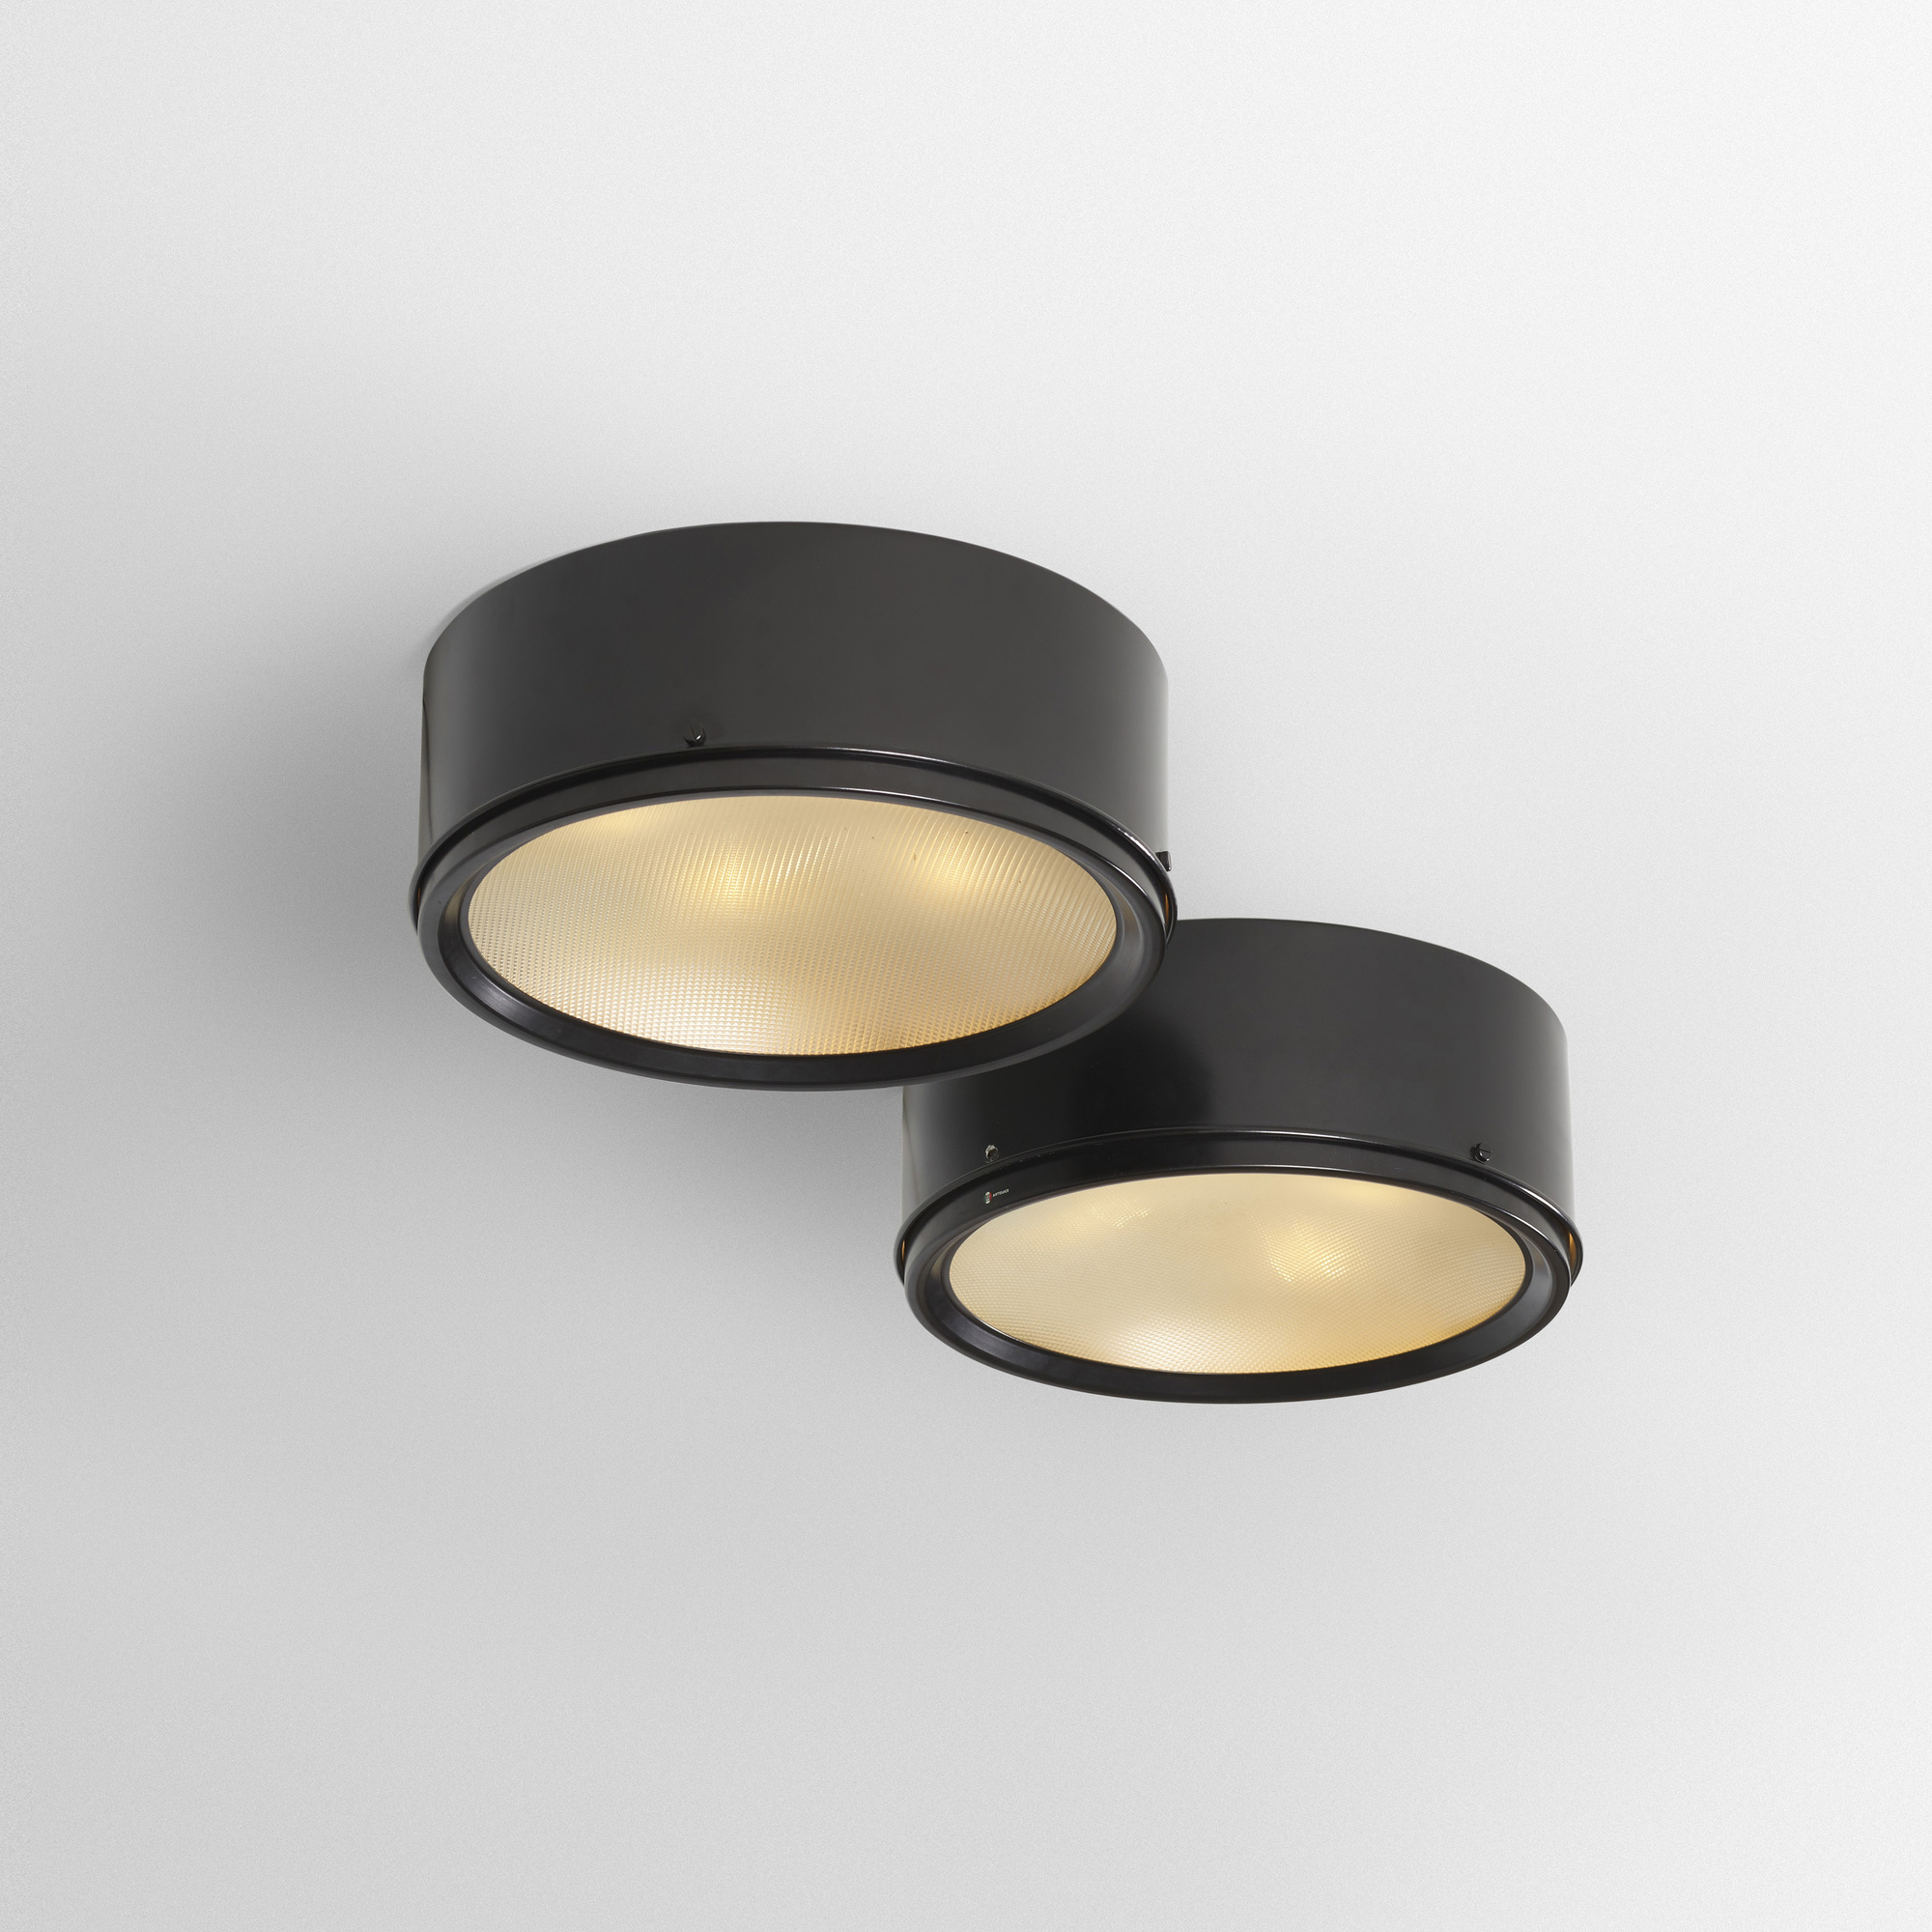 Lights Ceiling 336 Gino Sarfatti Ceiling Lights Model 3055 37 Pair Design 8